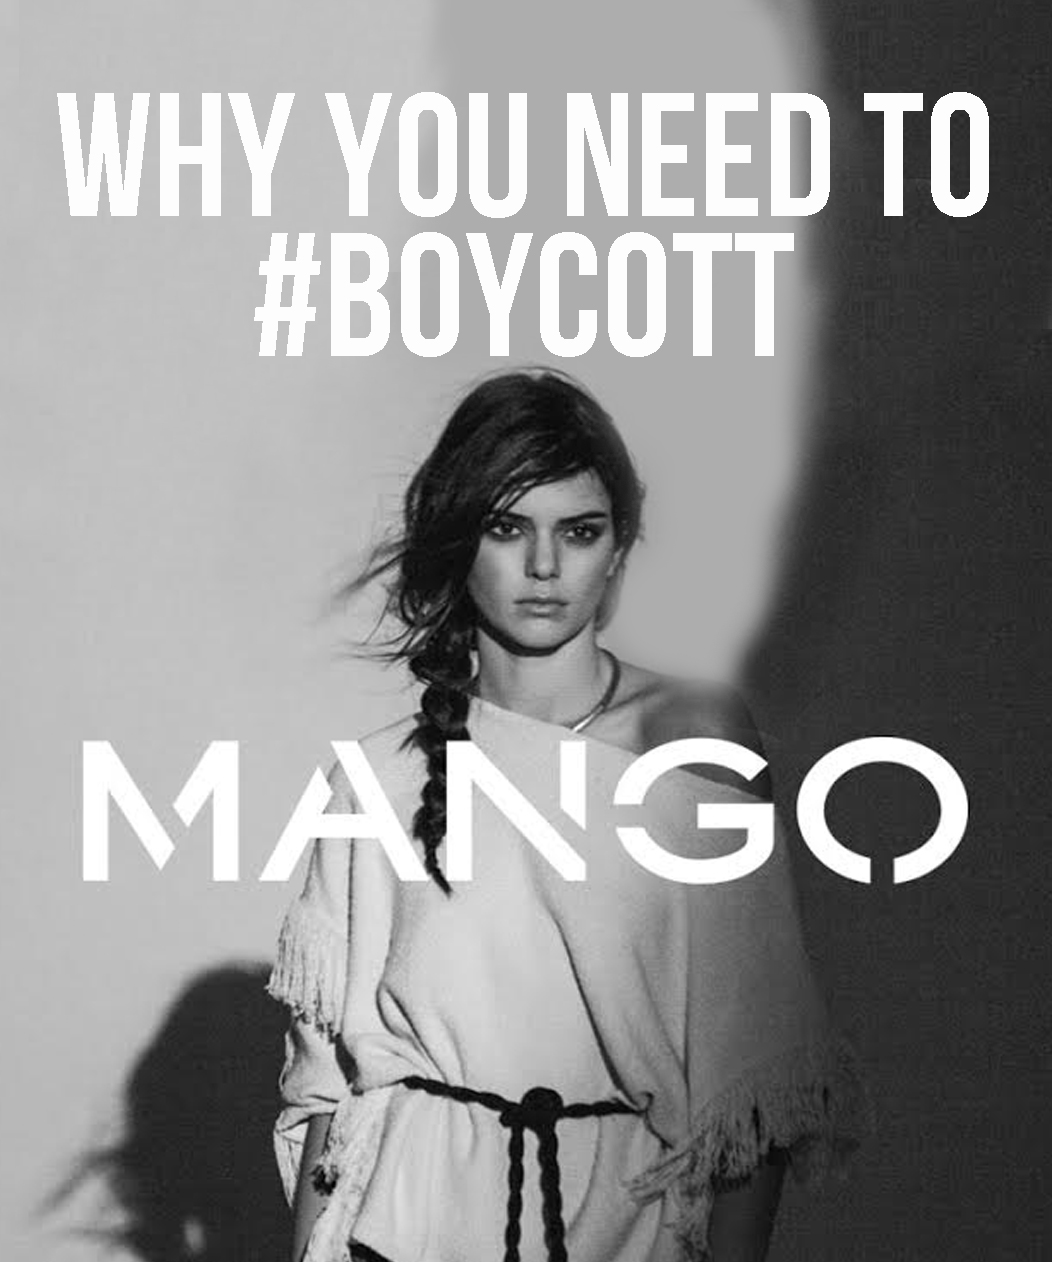 ethical fashion, unethical fashion, boycott fashion, mango clothing, rana plaza mango